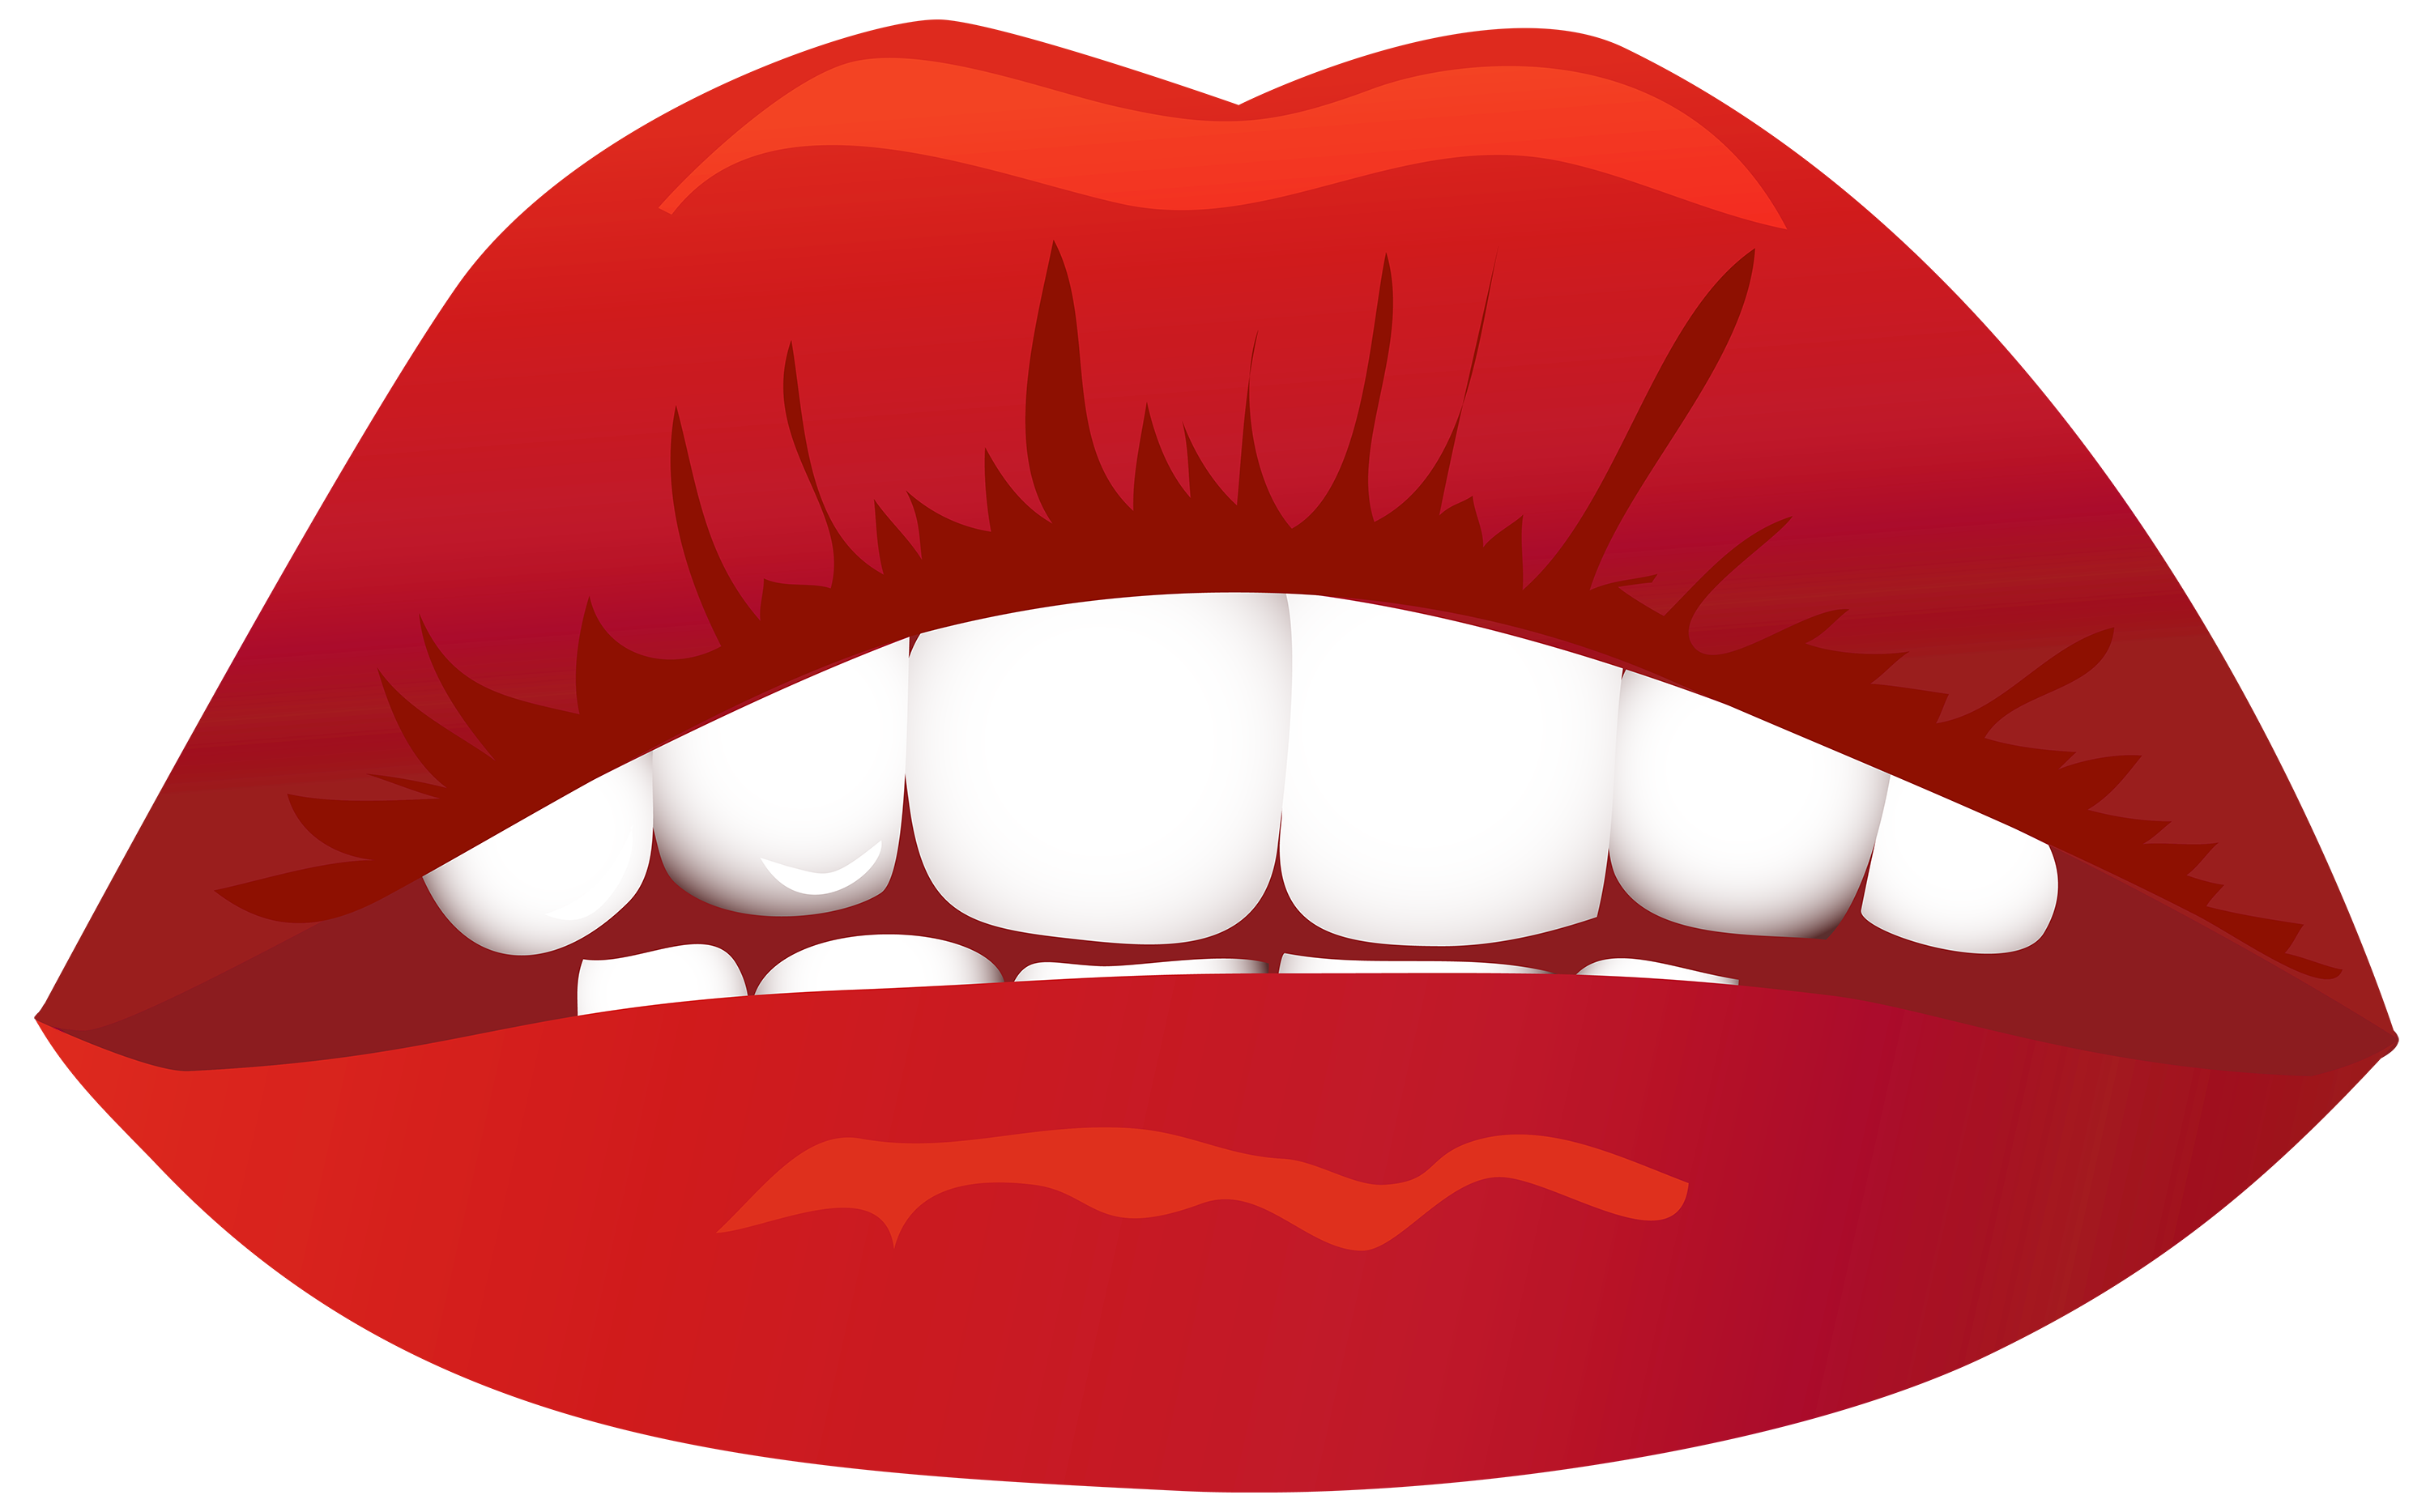 Website clipart responsible. Lips png image best